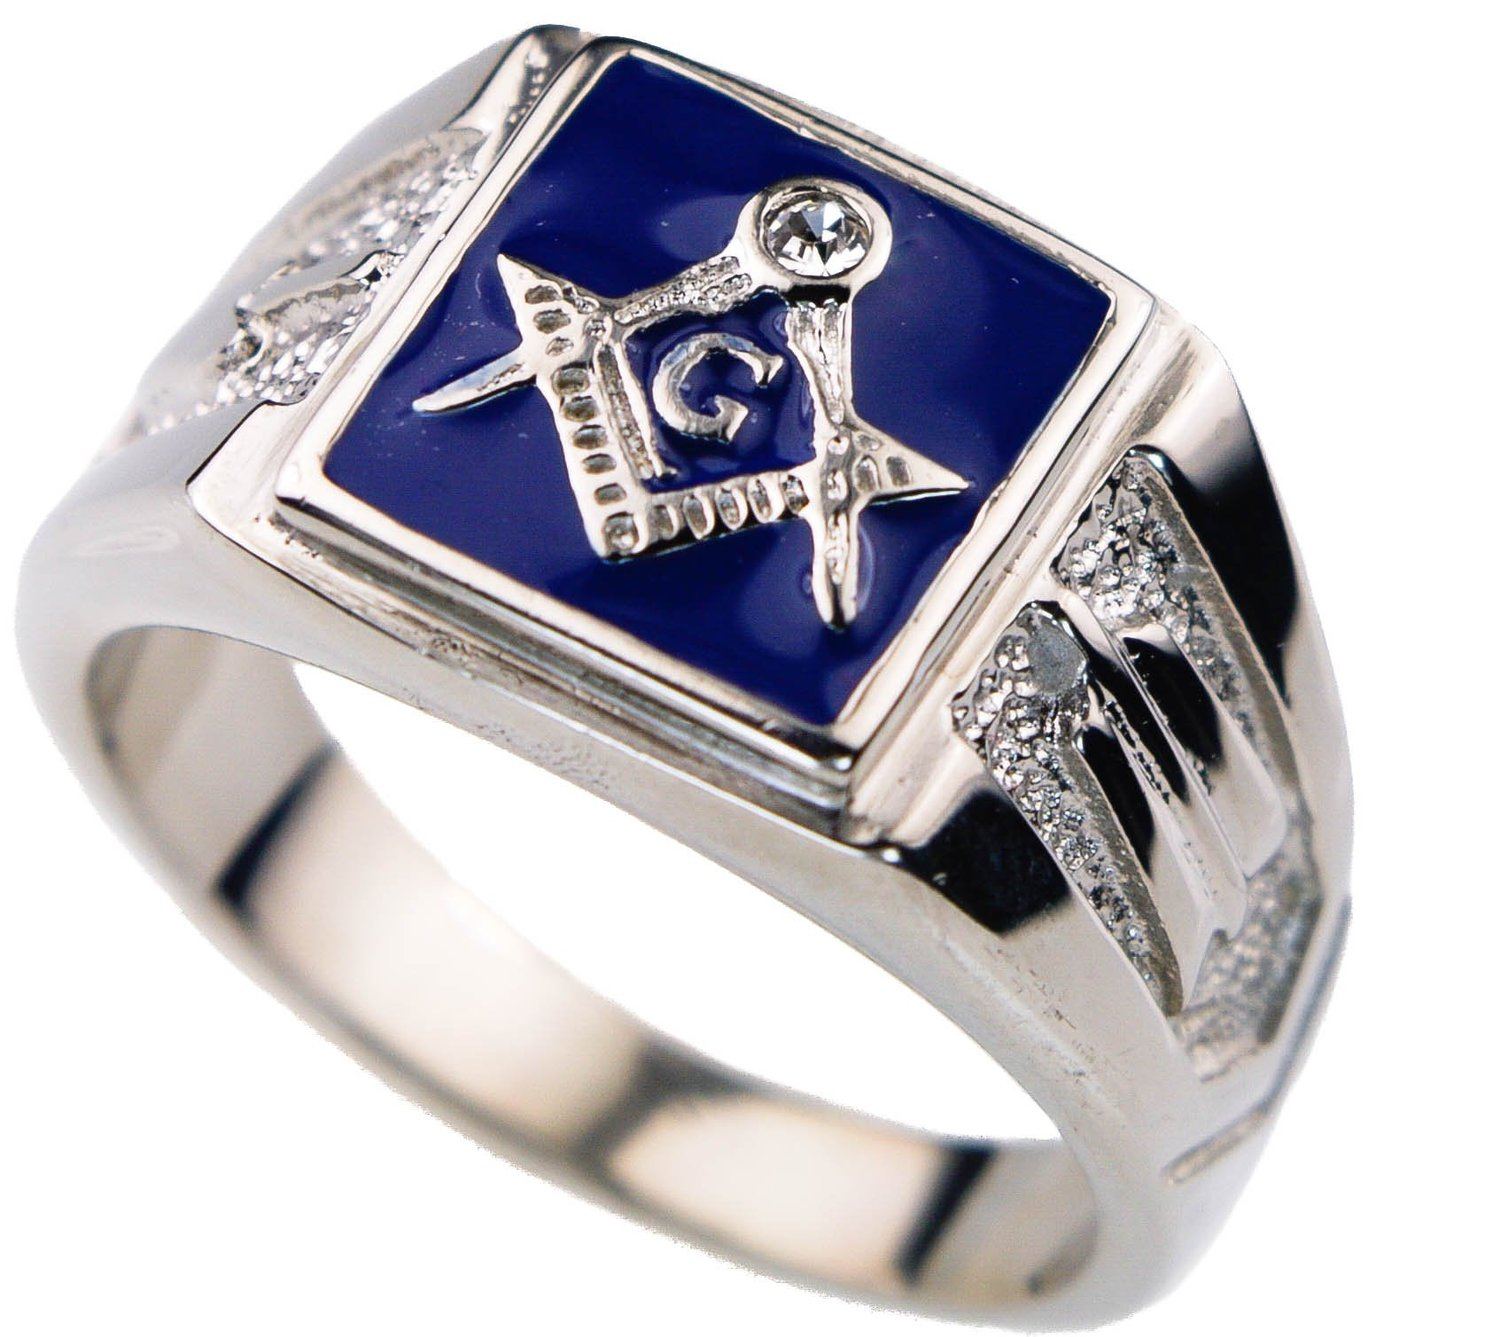 ring freemason masonic rings mr asp mens jw star eastern detail